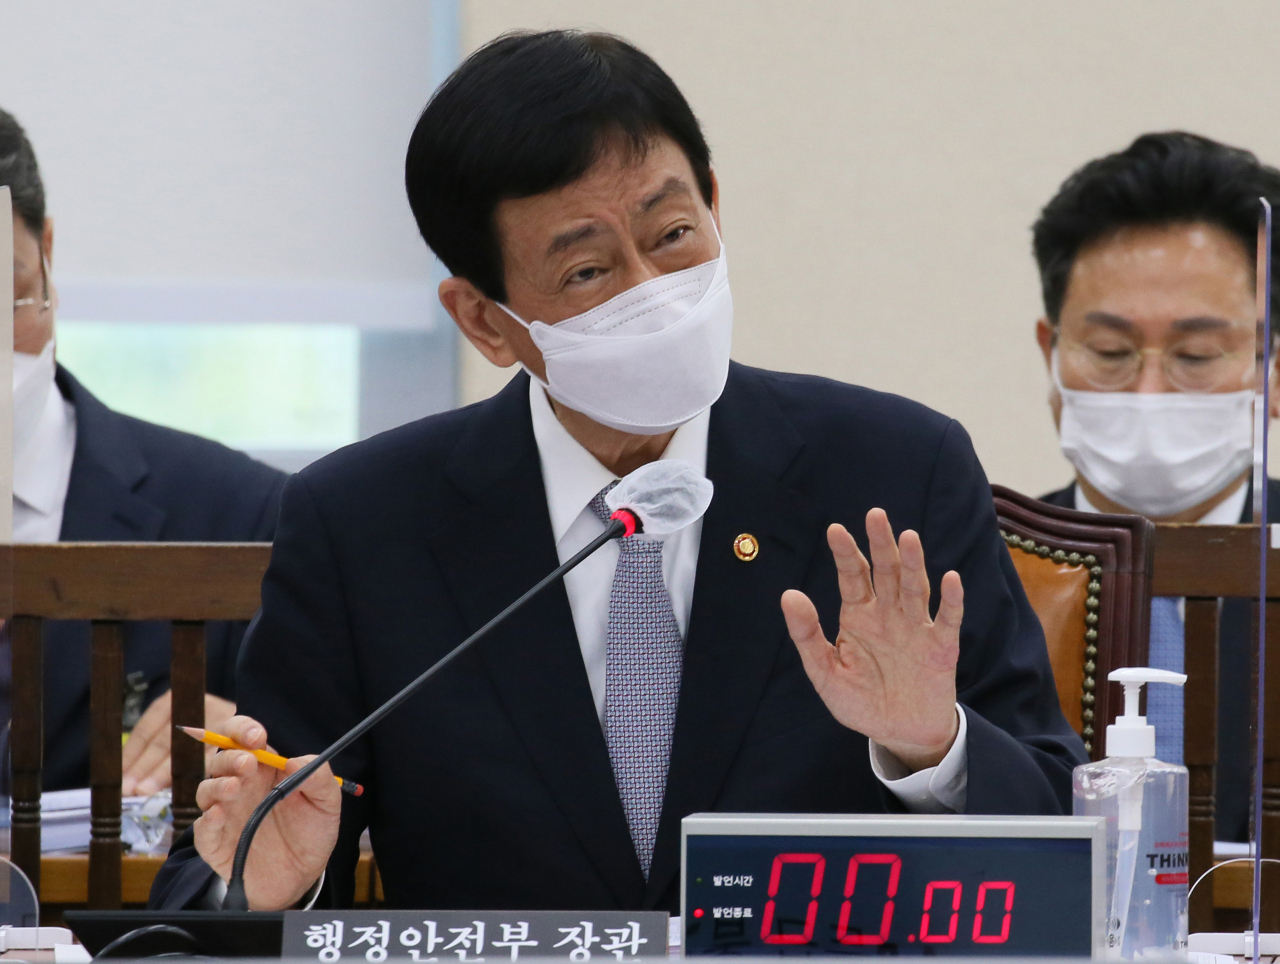 This file photo shows Interior and Safety Minister Chin Young. (Yonhap)